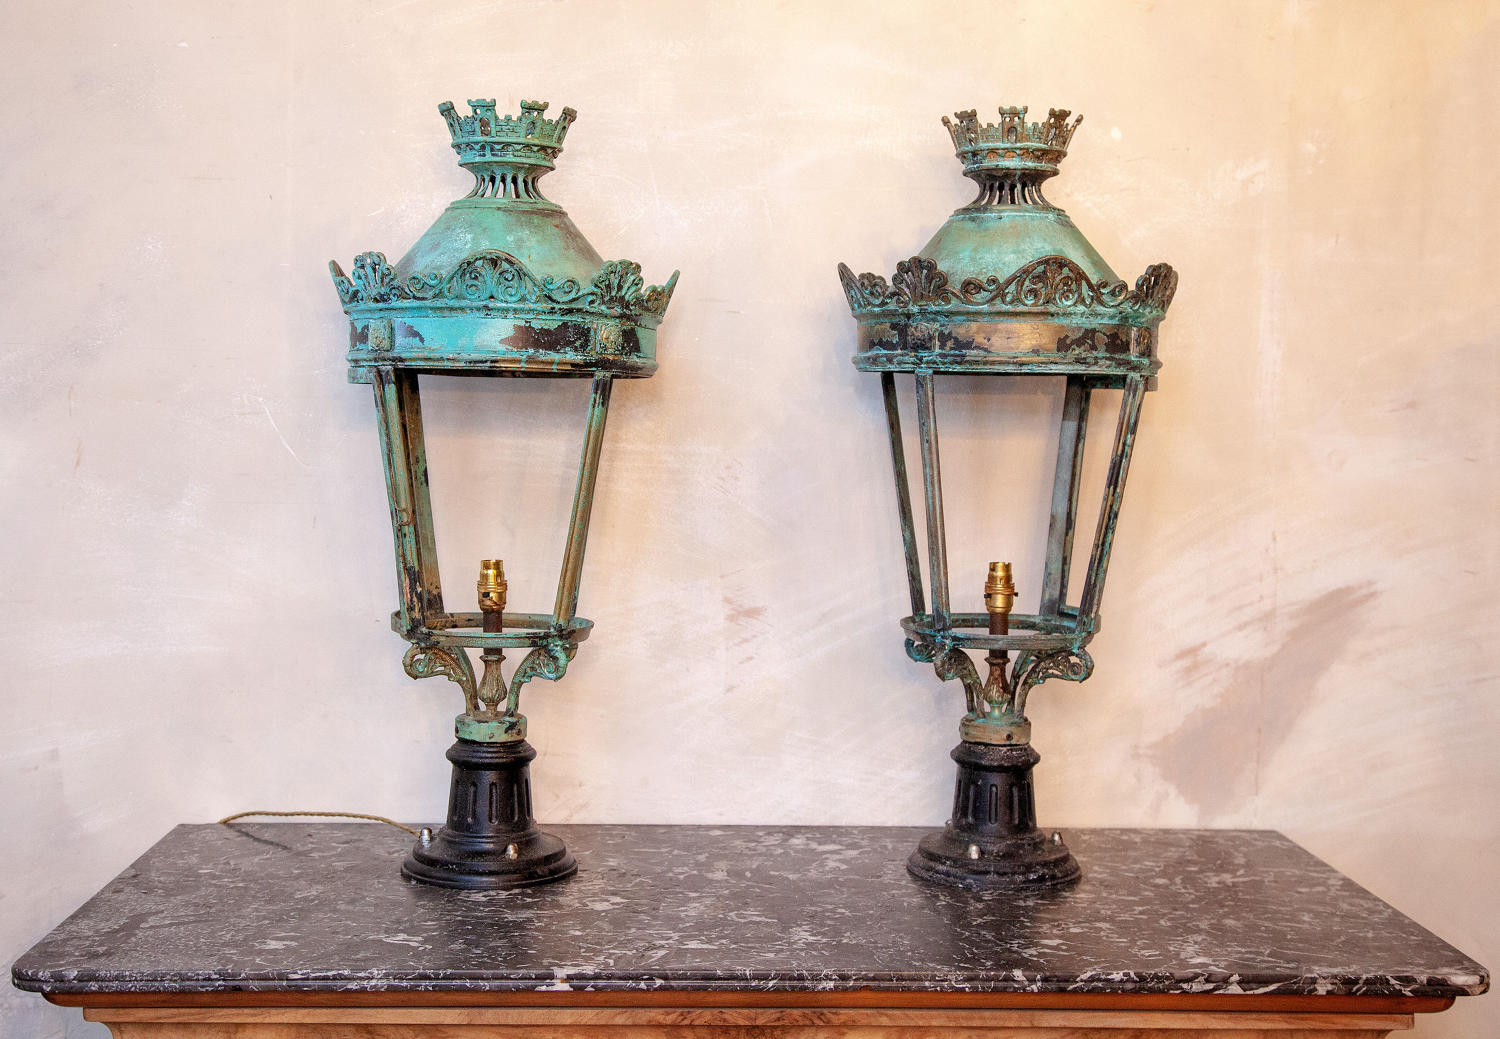 A stunning pair of patinated Verd Gris bronze lamps in the Regency sty